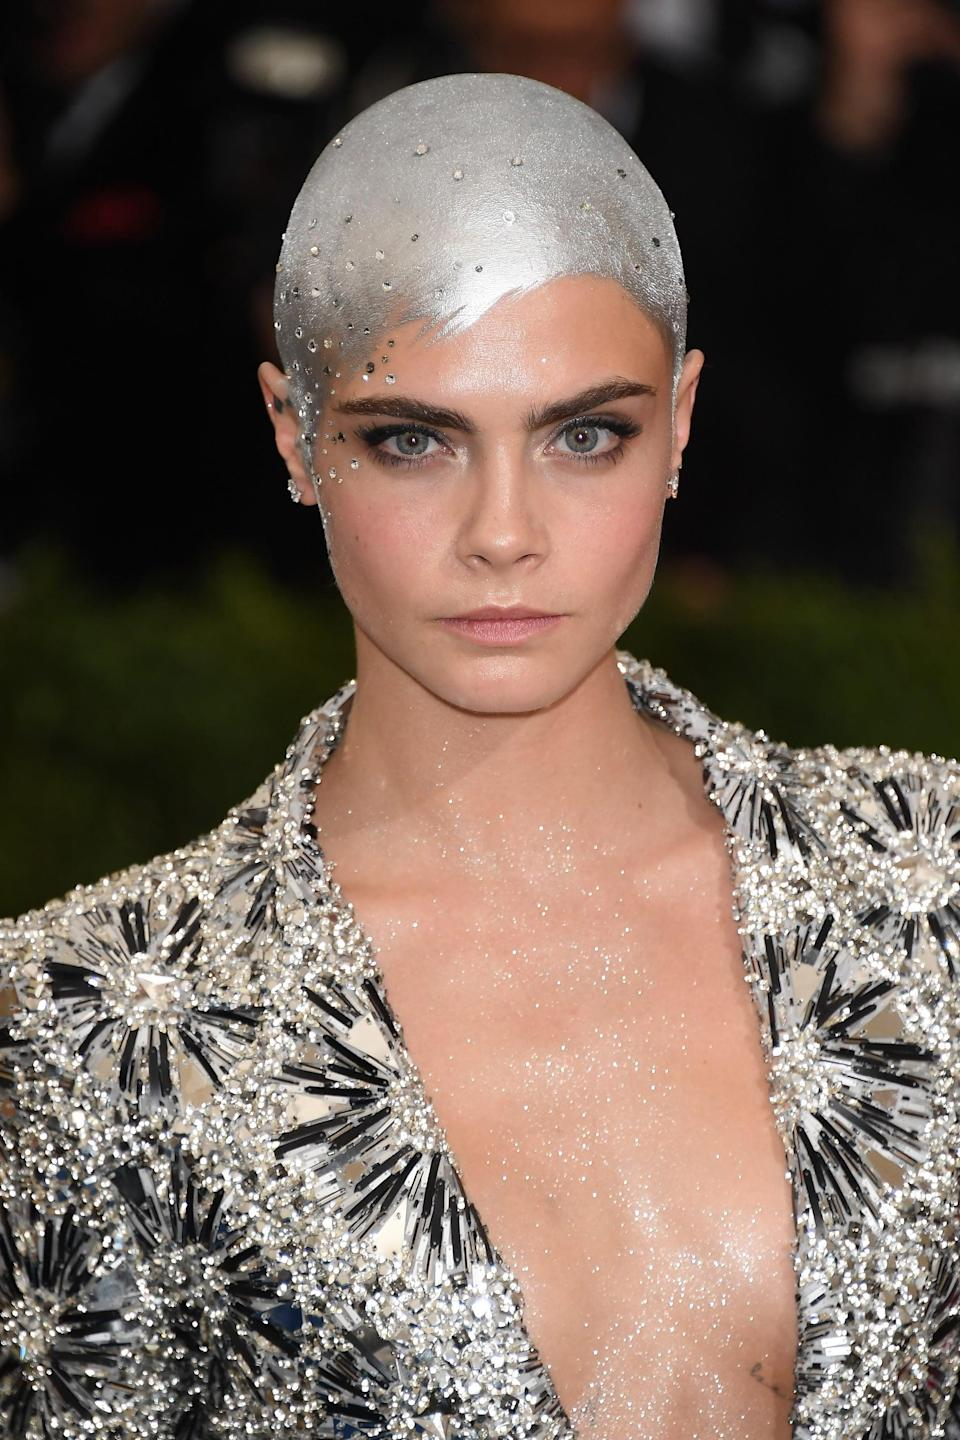 <p>Delevingne debuted her newly shaved head in the most epic way possible at the 2017 Met Gala. Makeup artist Romy Soleimani <span>combined Mehron Silver Metallic Powder with MAC Mixing Medium</span>, and painted the mixture over her bald head, letting it dip down onto her forehead, creating the outline of where a fringe might be. Soleimani then topped off the silver paint with glitter hairspray (to add dimension) and finished with a smattering of Swarovski crystals that she stuck on with Spirit Gum.</p>